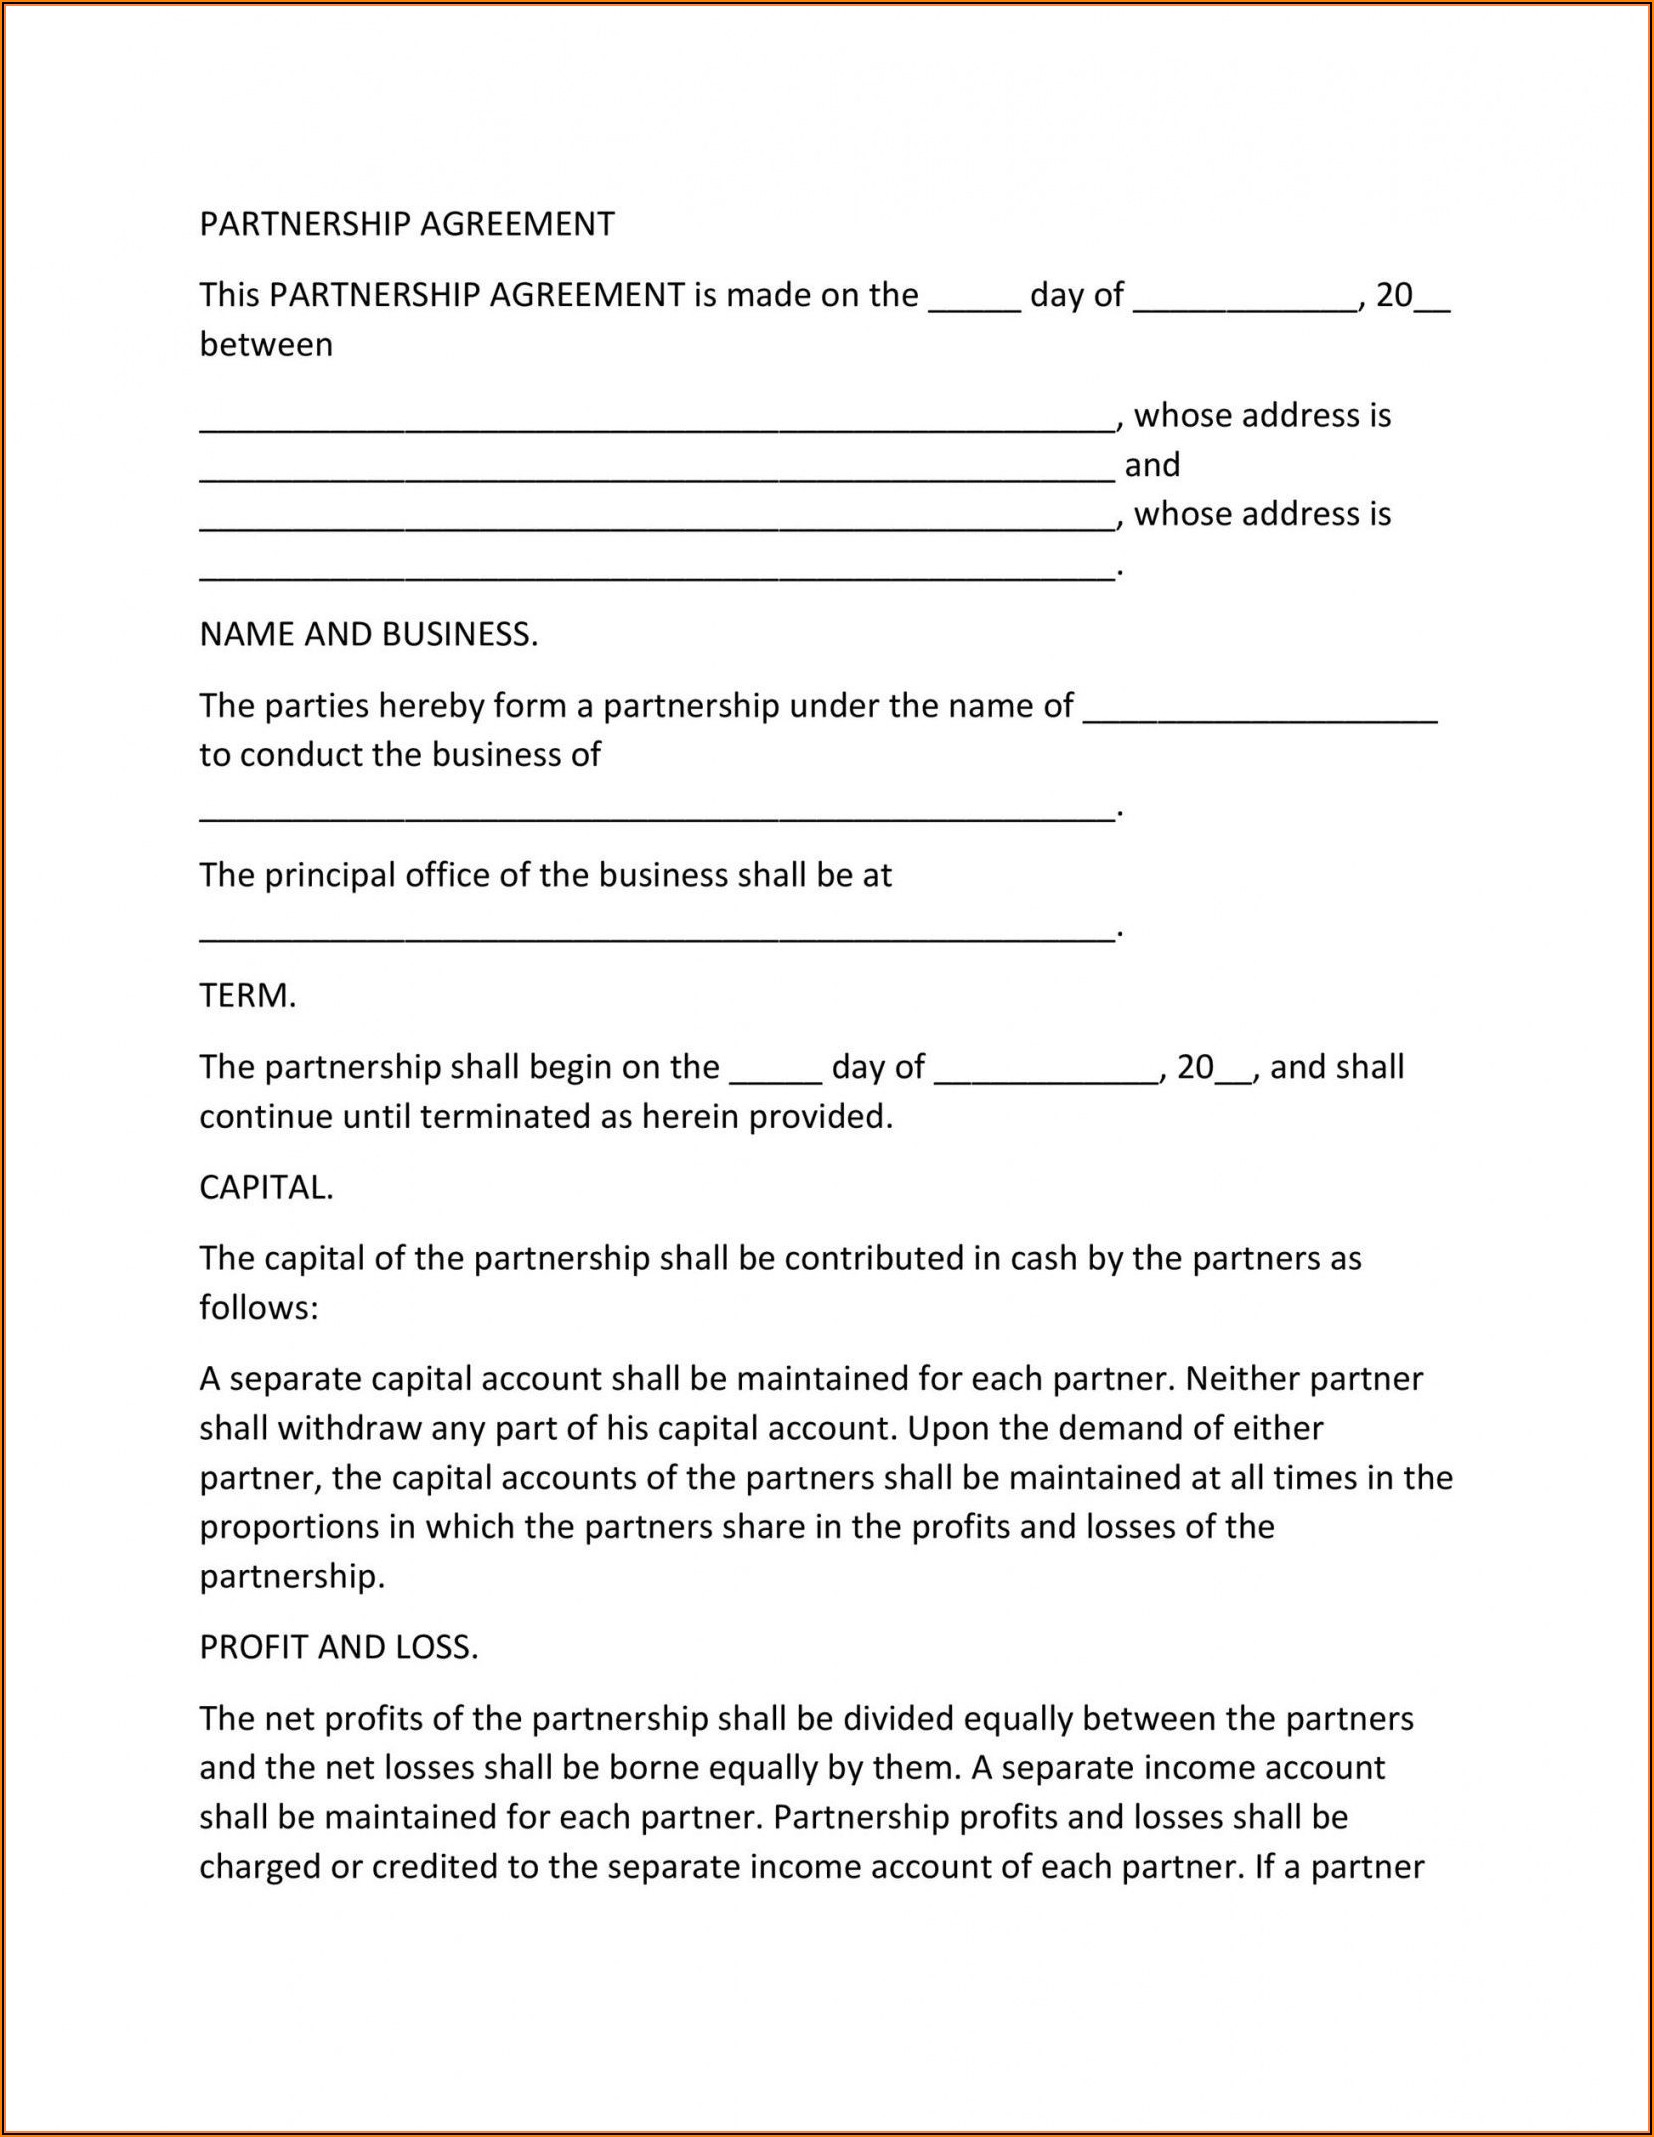 Partner Agreement Template